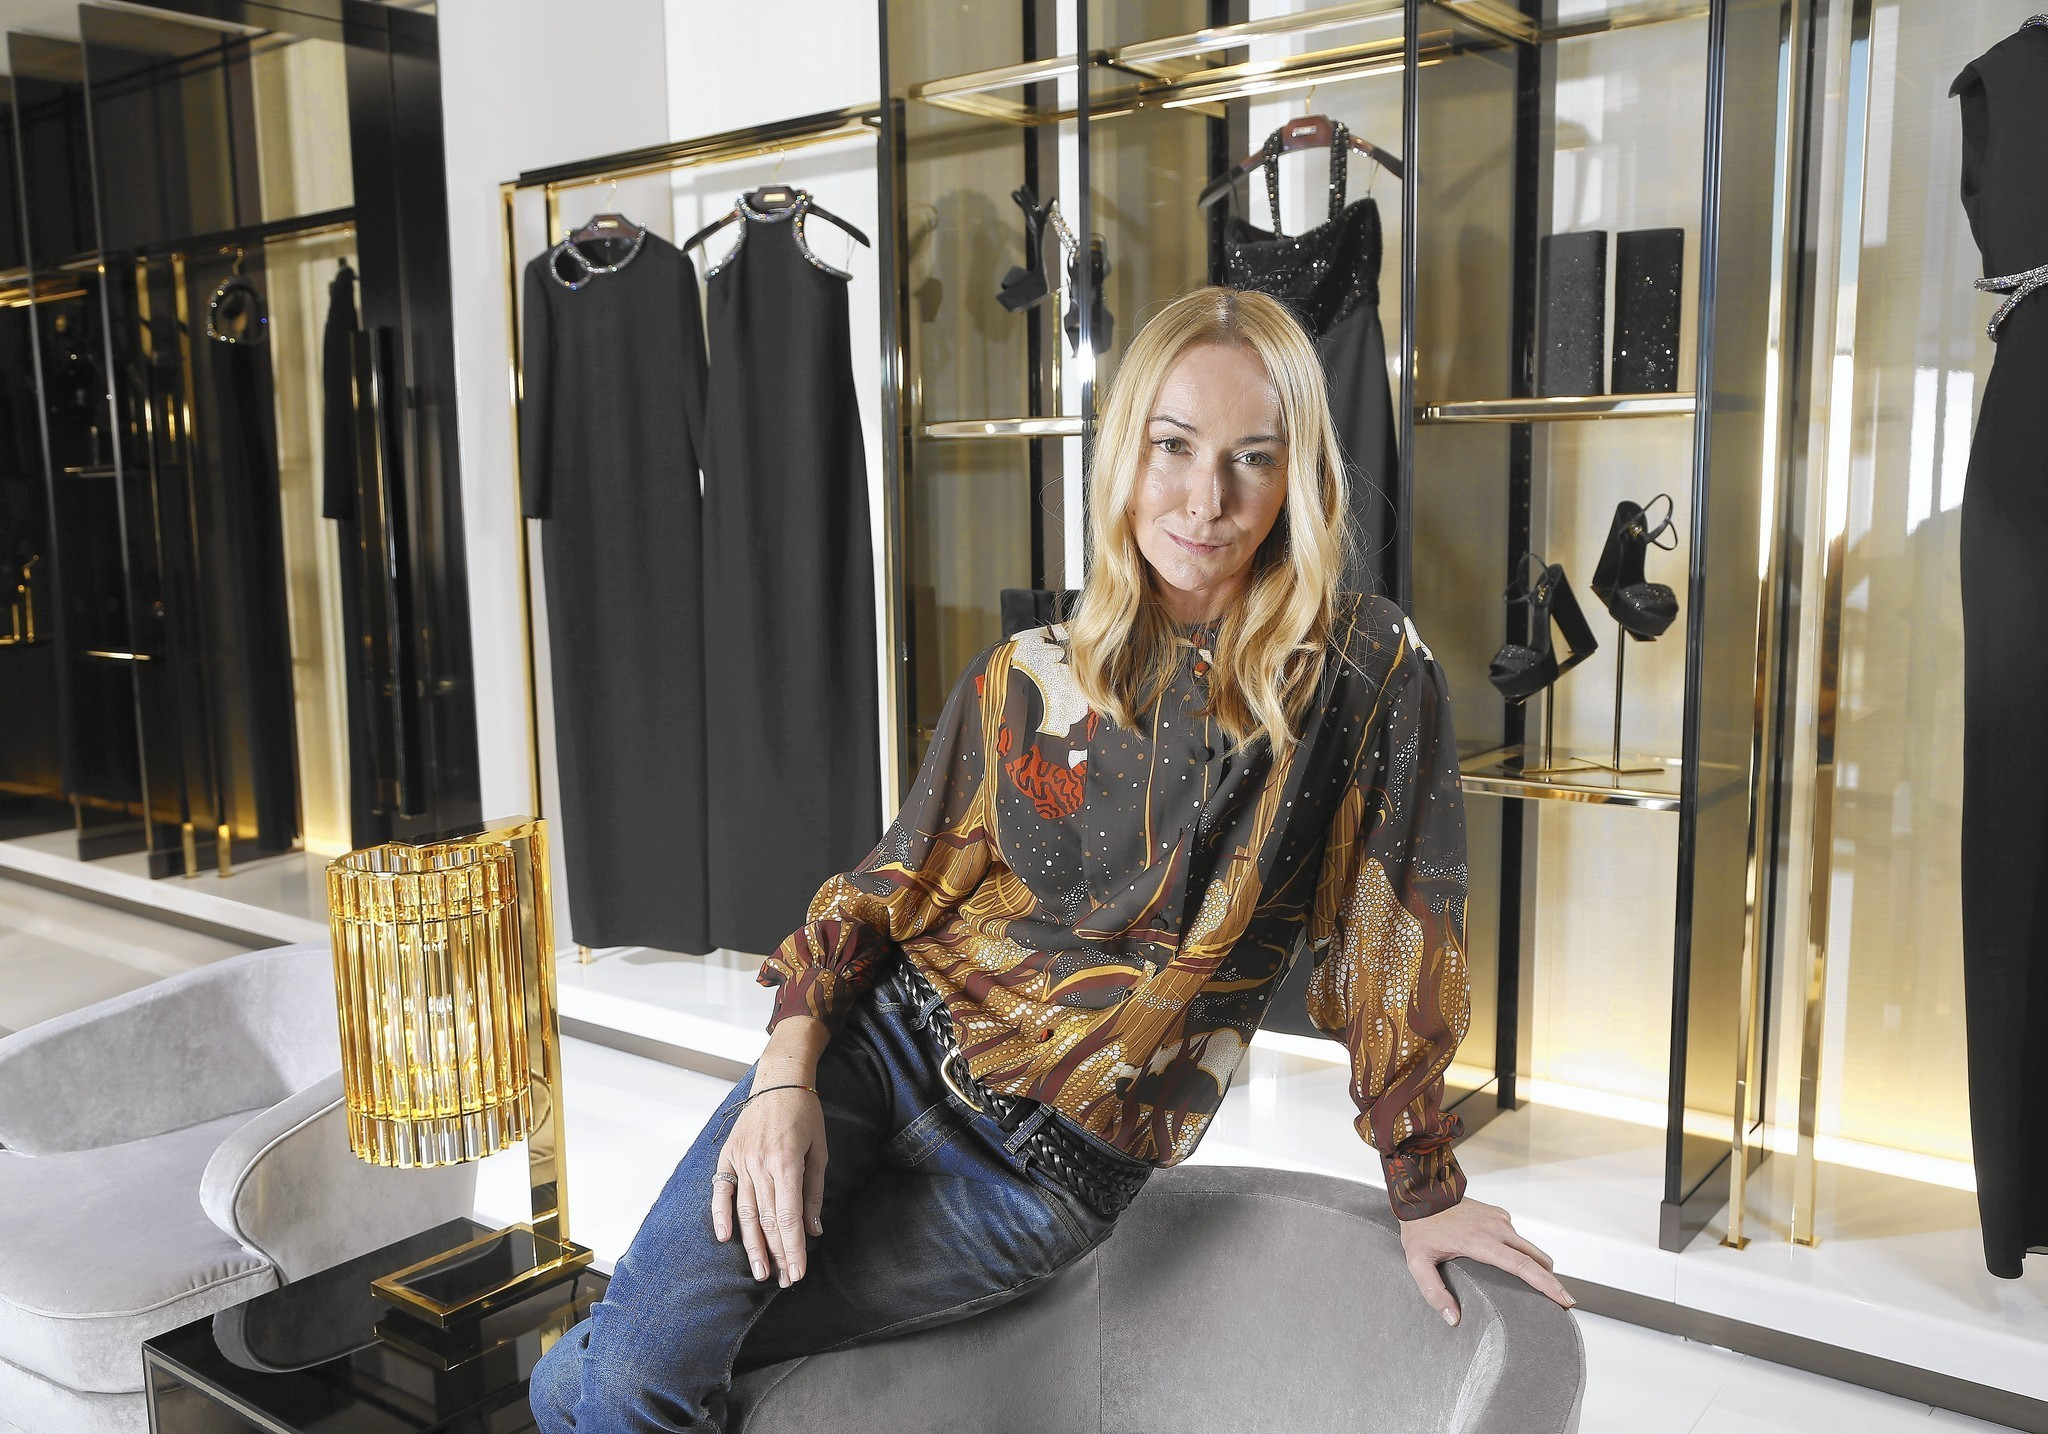 Frida Giannini, Gucci's creative director, visits the company's revamped store on Rodeo Drive